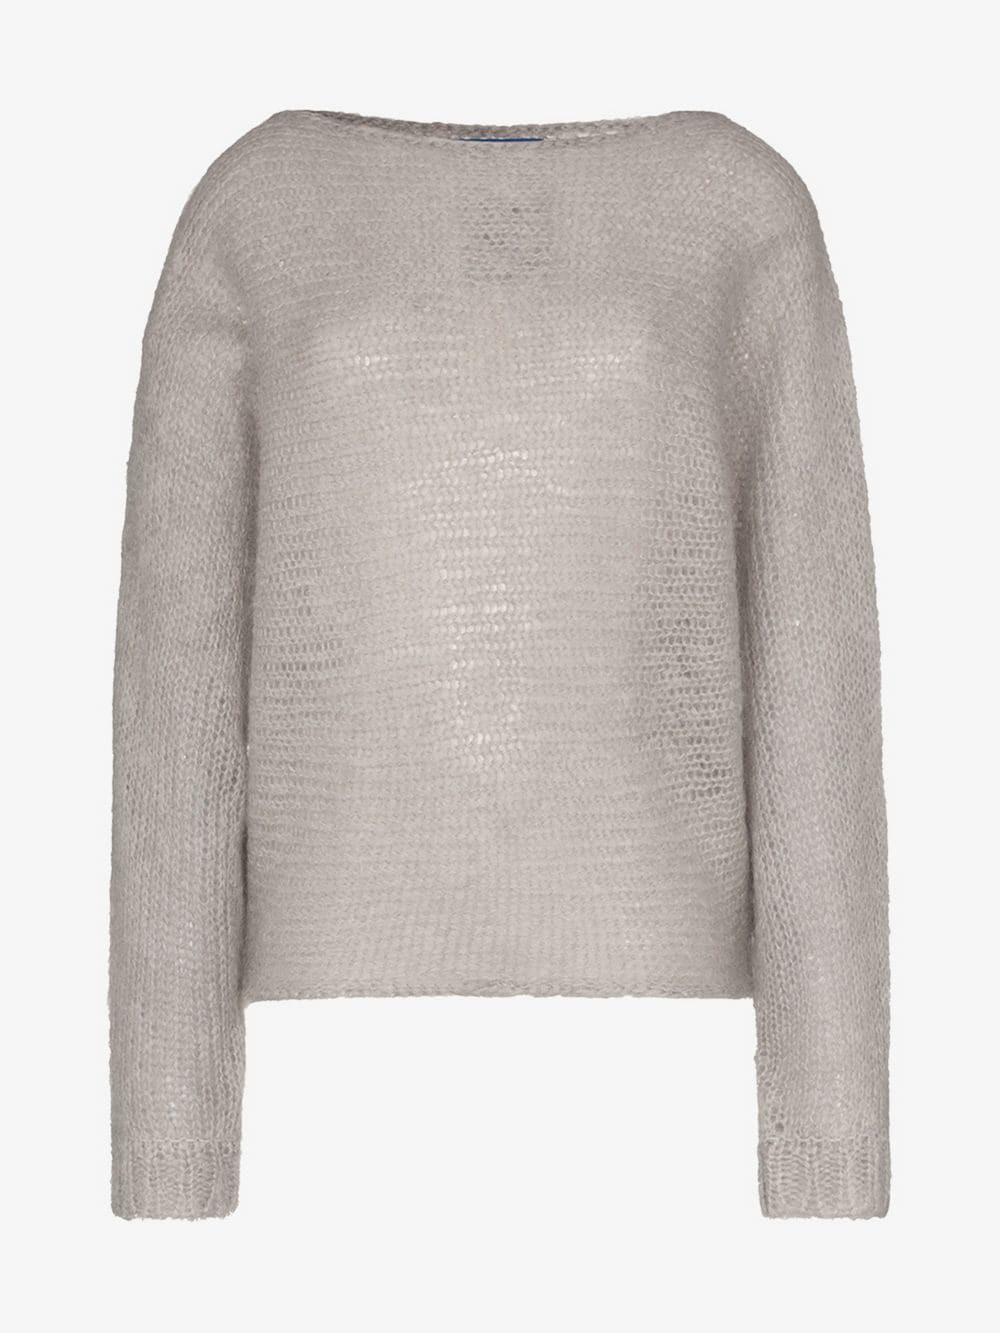 Simon Miller batwing sleeve knitted mohair wool jumper in grey